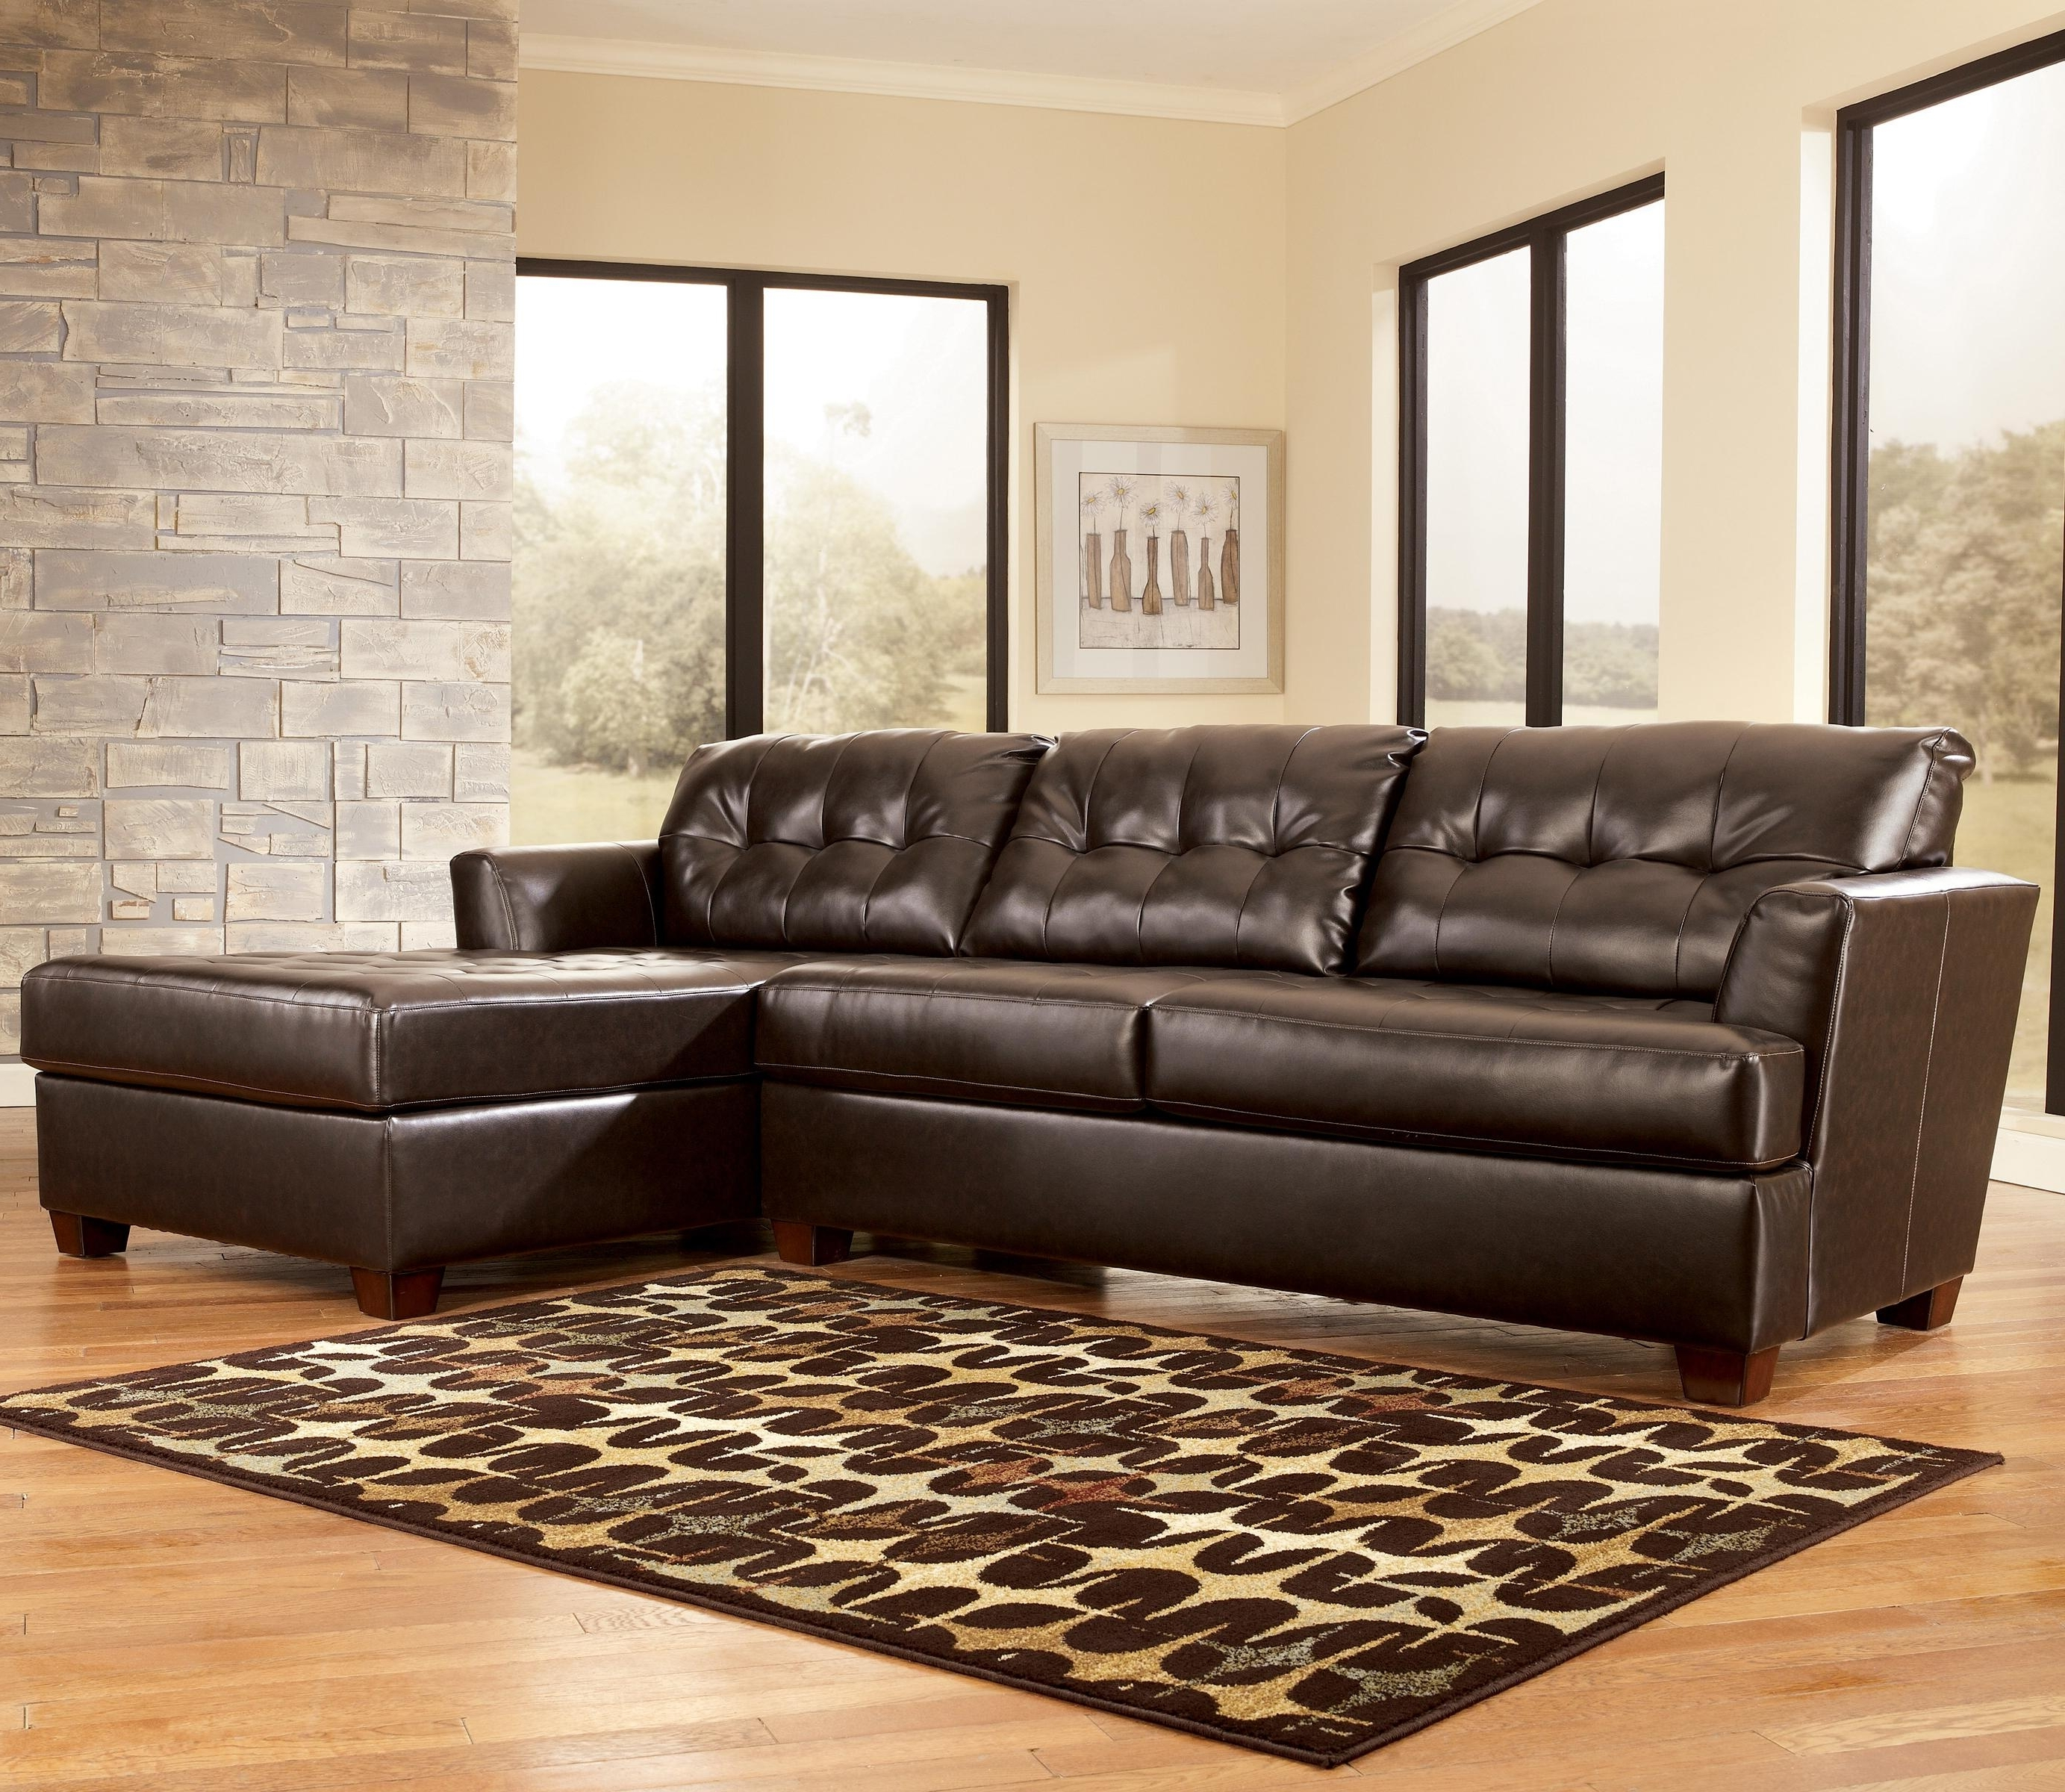 Dixon Durablend – Chocolate Sectional Sofasignature Design Within Well Known Homemakers Sectional Sofas (View 2 of 20)